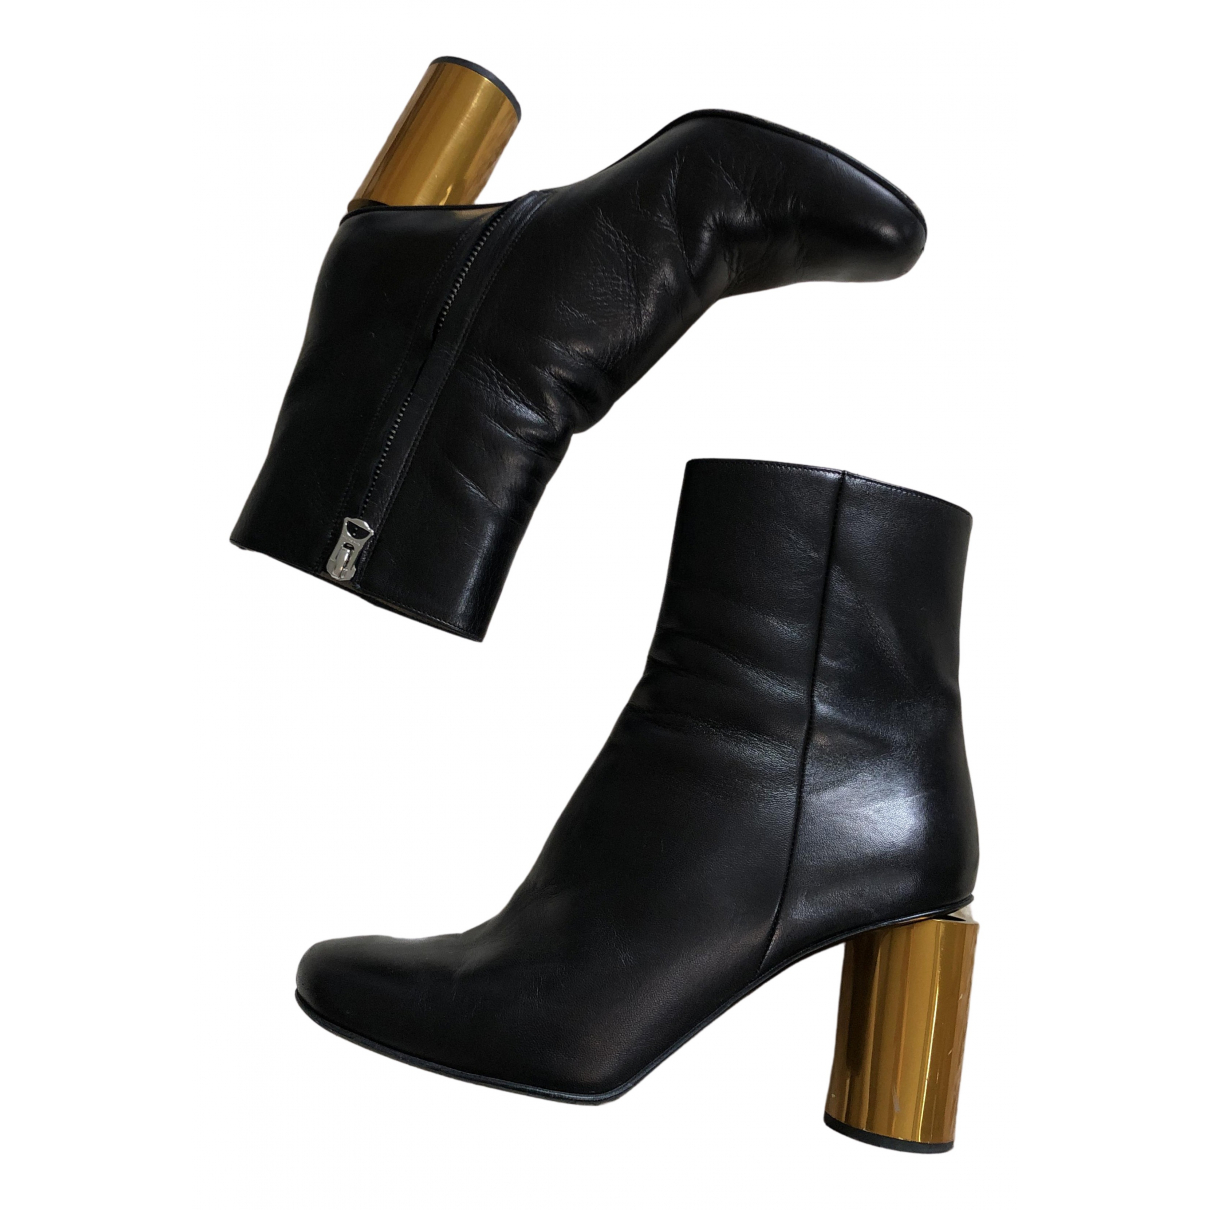 Acne Studios N Black Leather Ankle boots for Women 38 EU